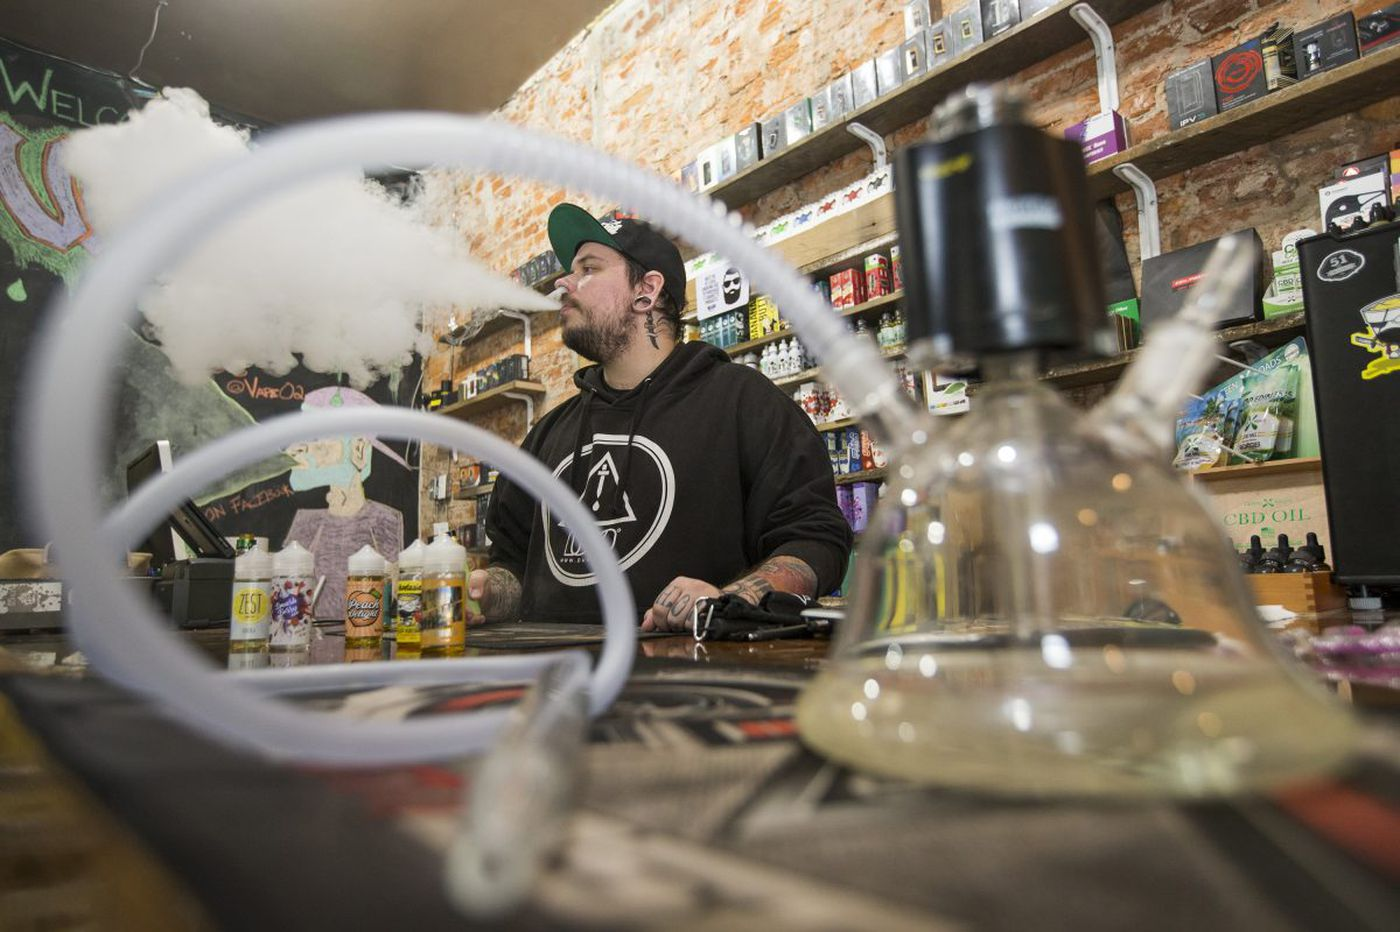 How safe is the flavor you're vaping?